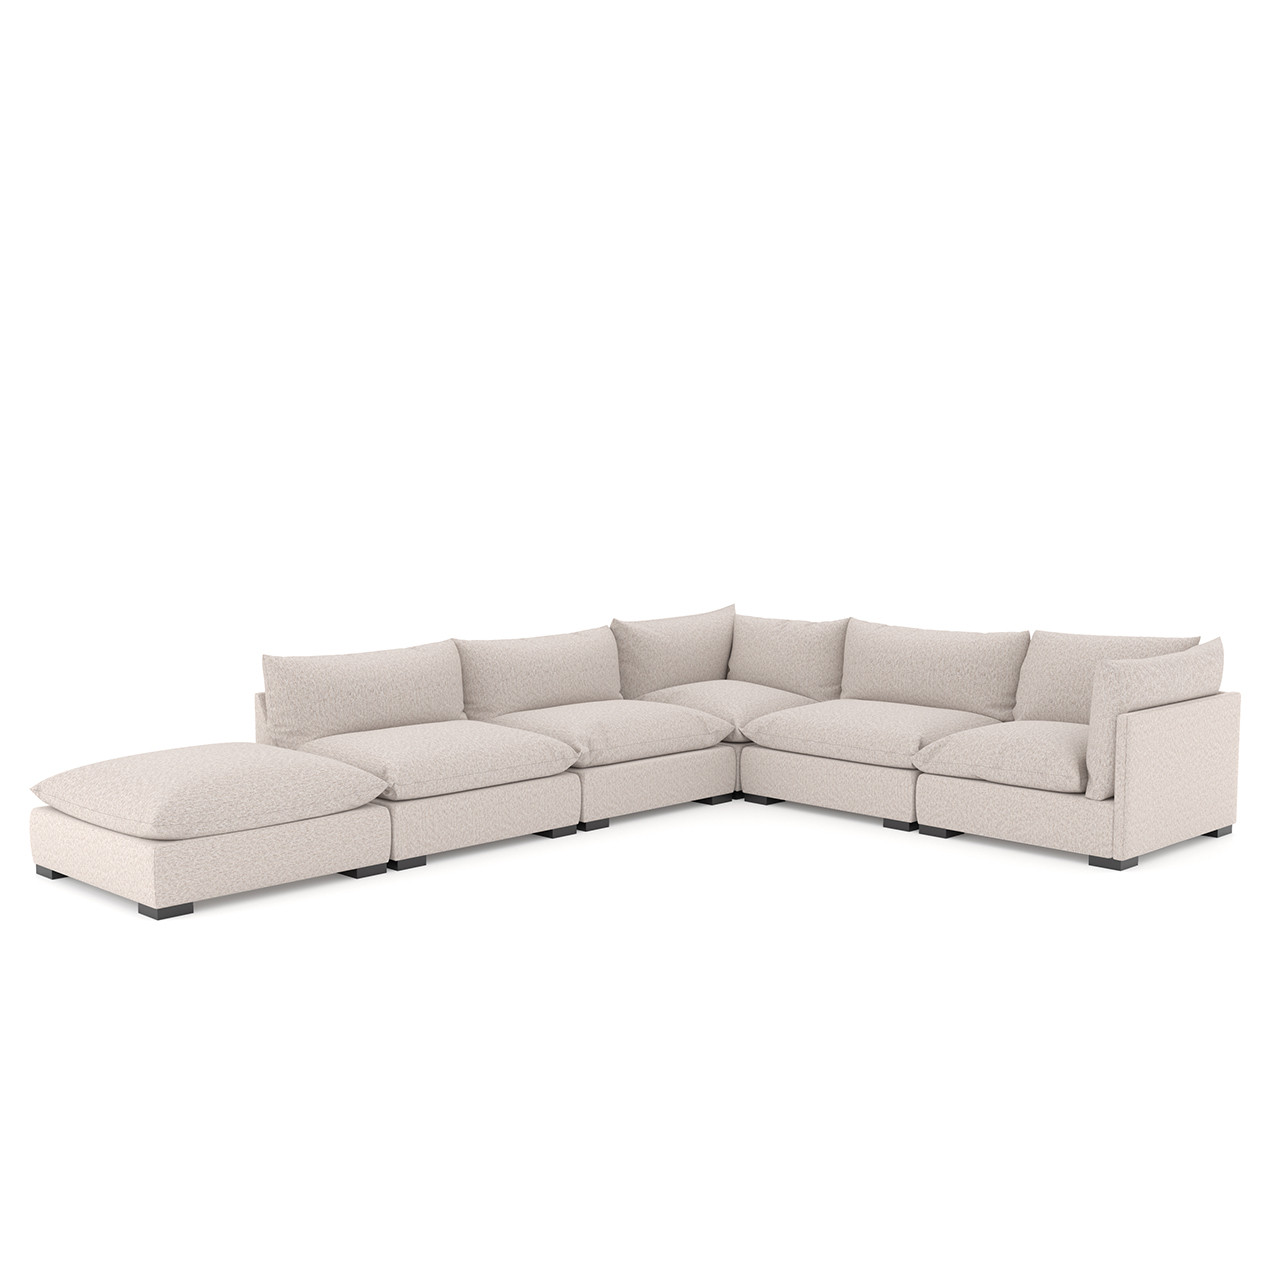 Zoe 5 Pc Sectional W/ Ottoman - Bs Pb